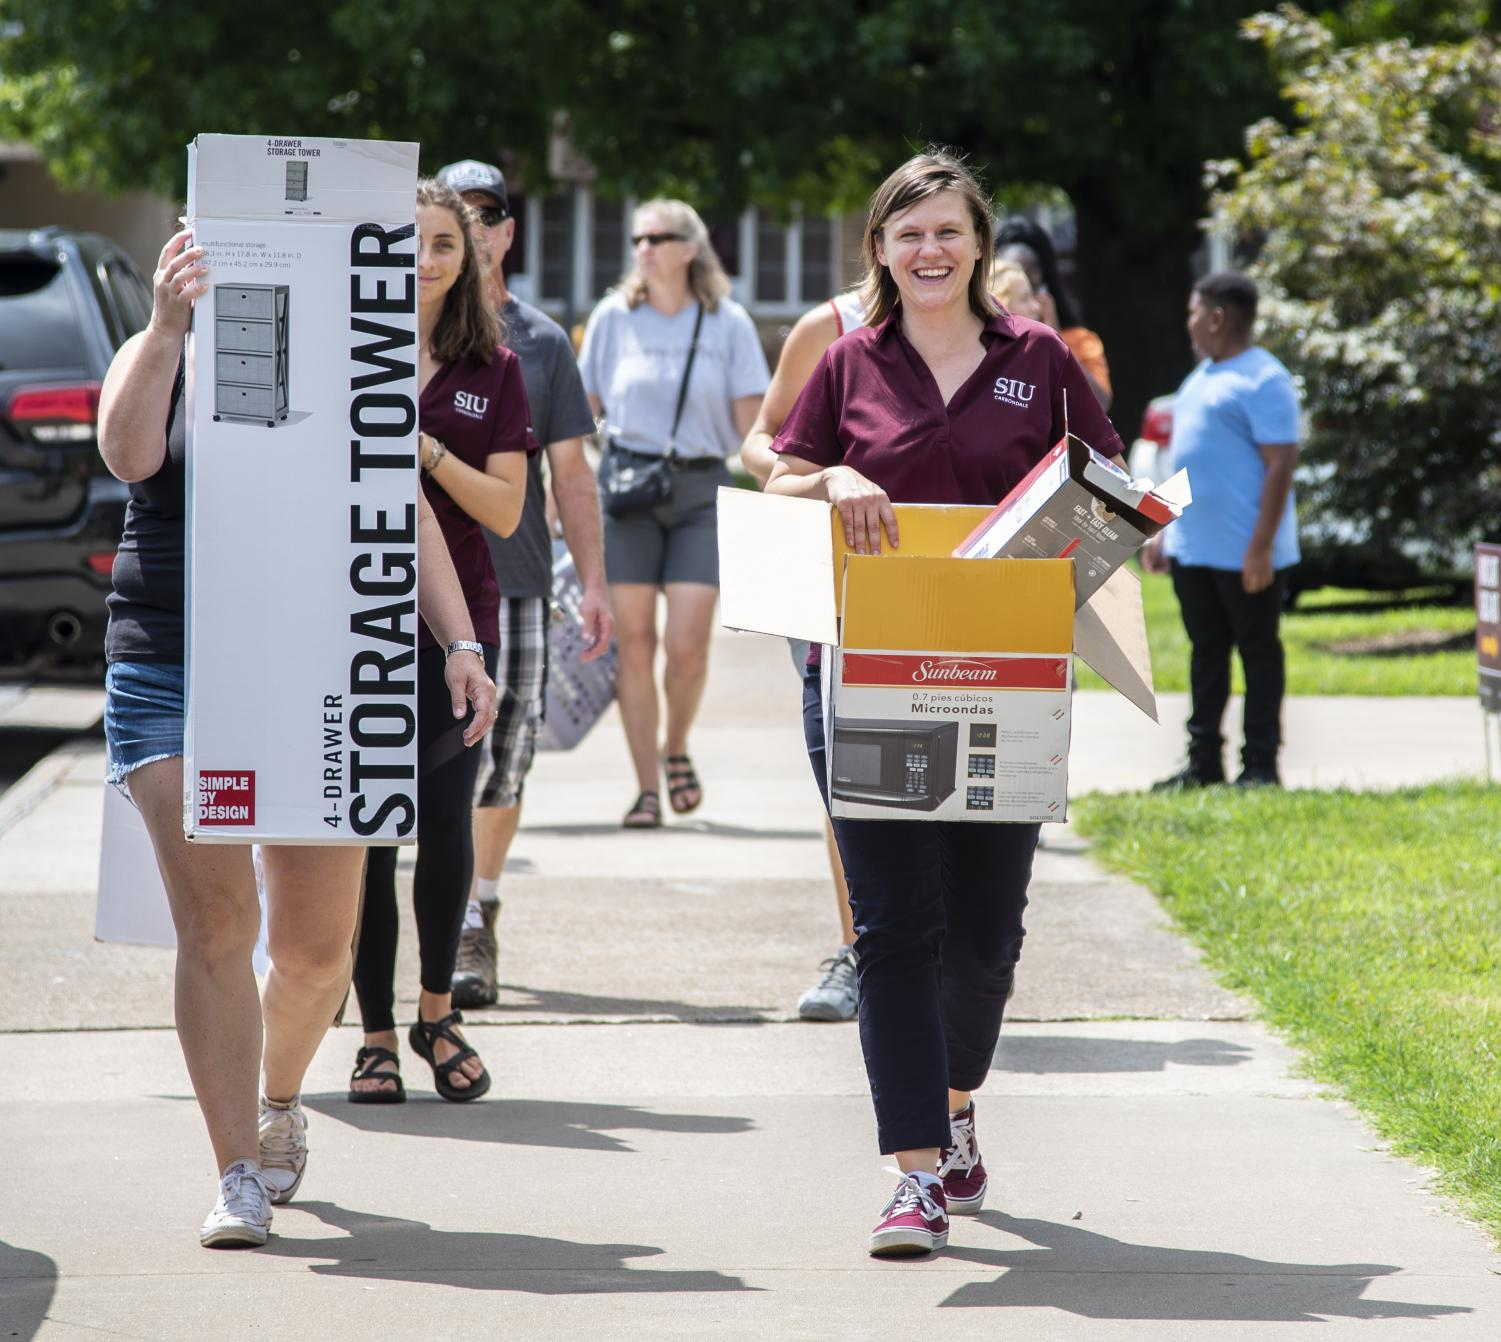 Karen Schauwecker, the sustainability coordinator for the Sustainability office, gathers recyclable cardboard, Thursday, Aug. 16, 2018, during move-in day at Thompson Point. (Mary Barnhart | @MaryBarnhartDE)